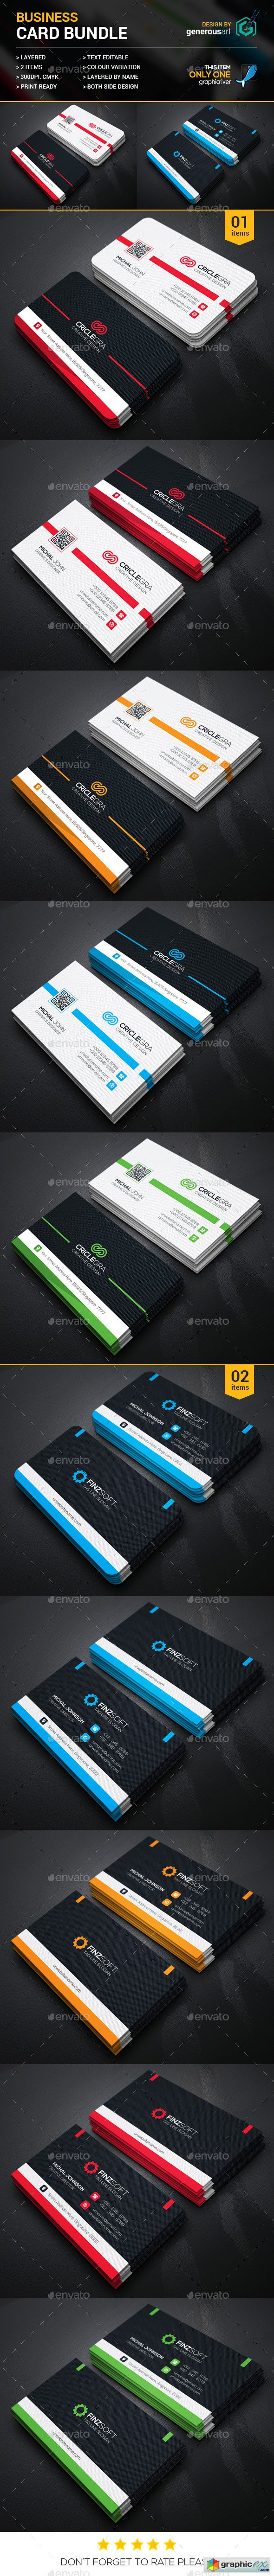 Business Card Bundle 2 in 1 Vol34